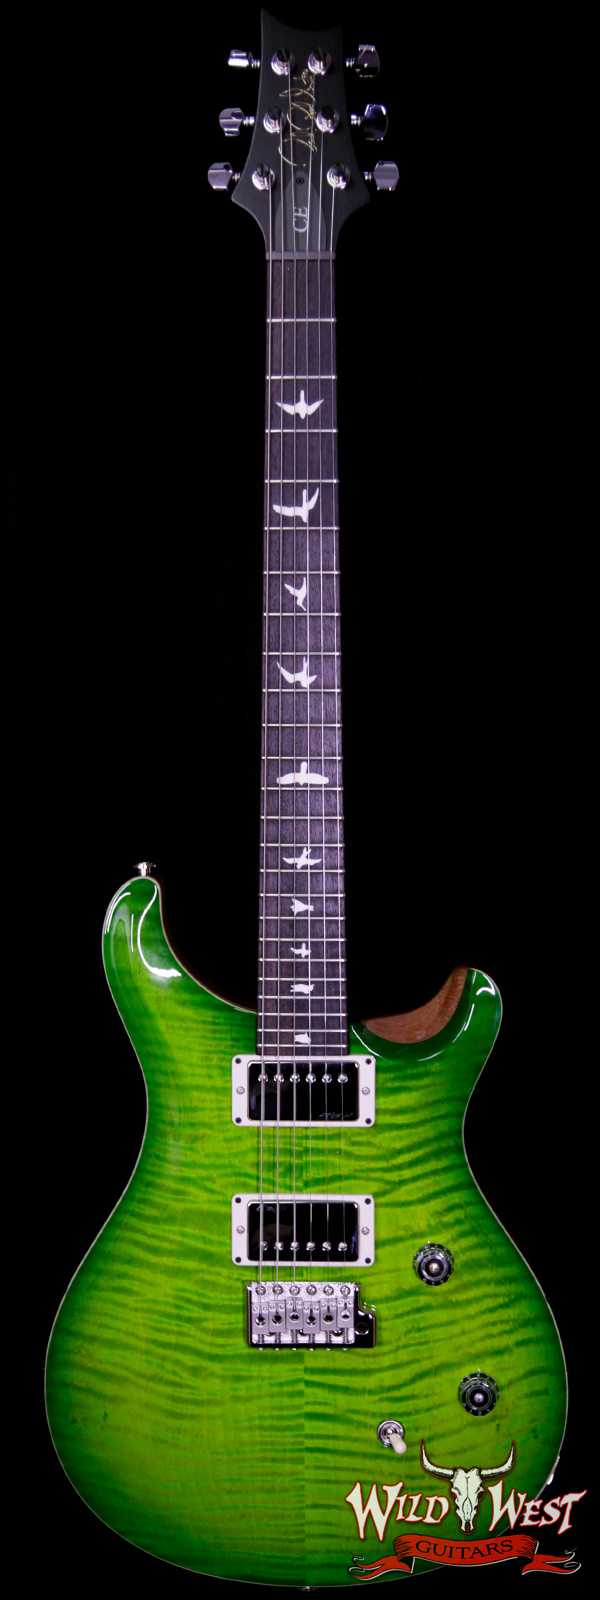 Paul Reed Smith PRS Wild West Guitars Special Run CE 24 Flame Top 57/08 Pickups Eriza Verde 252596